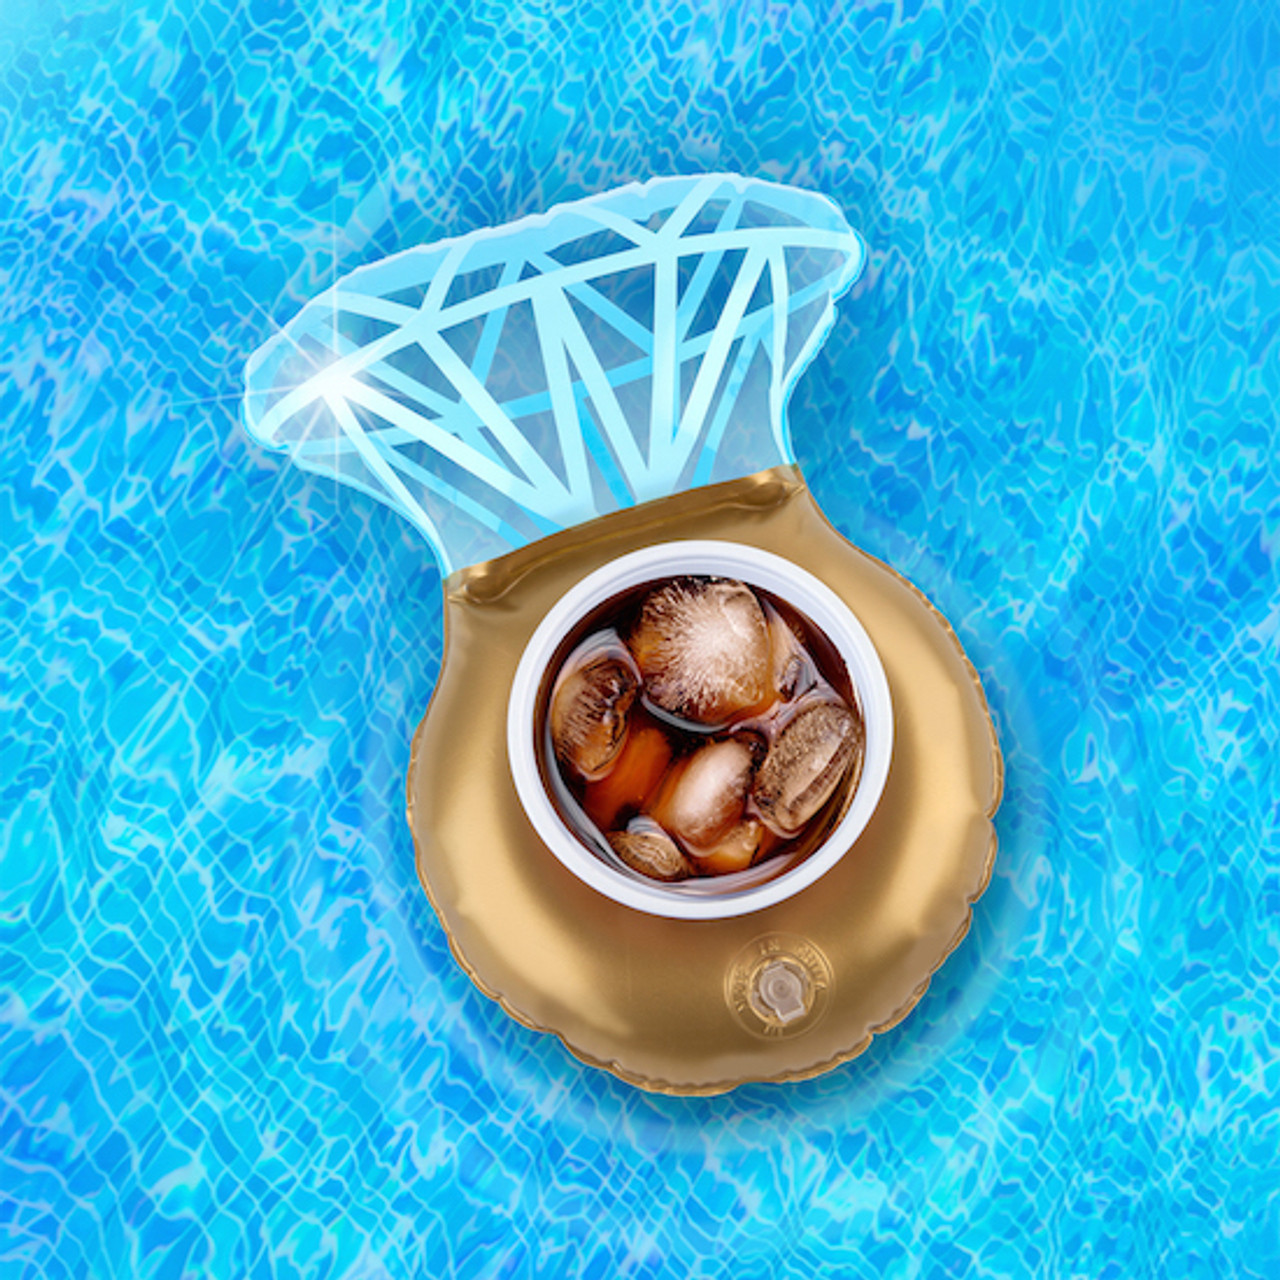 blue-ring-beverage-boat-cup-holder-pool-party-supplies-nightclub-shop-outdoors-3